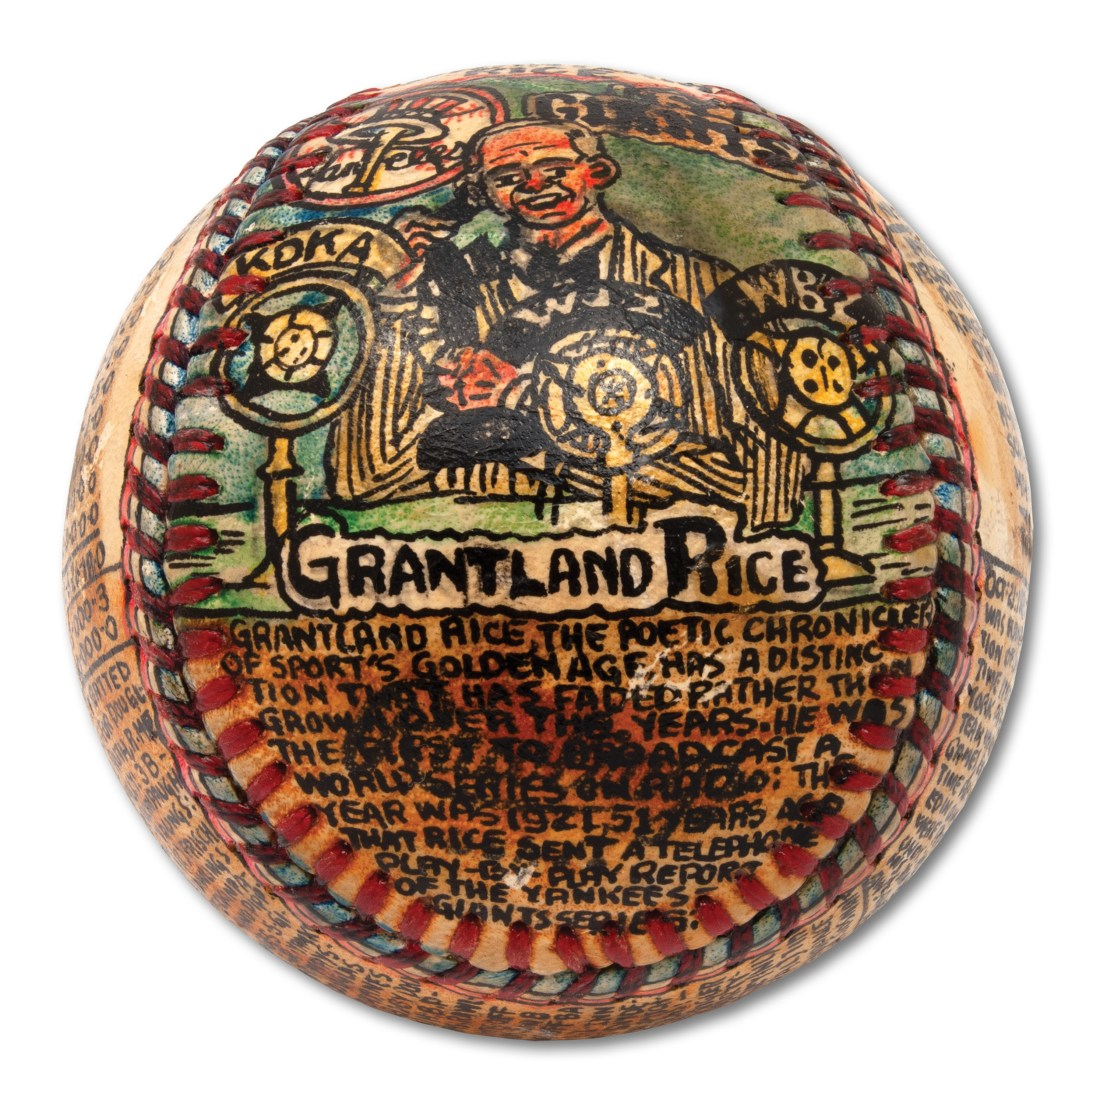 A baseball transformed by self-taught artist George Sosnak. This angle showcases his portrait of Grantland Rice broadcasting the 1921 World Series over the telephone system.